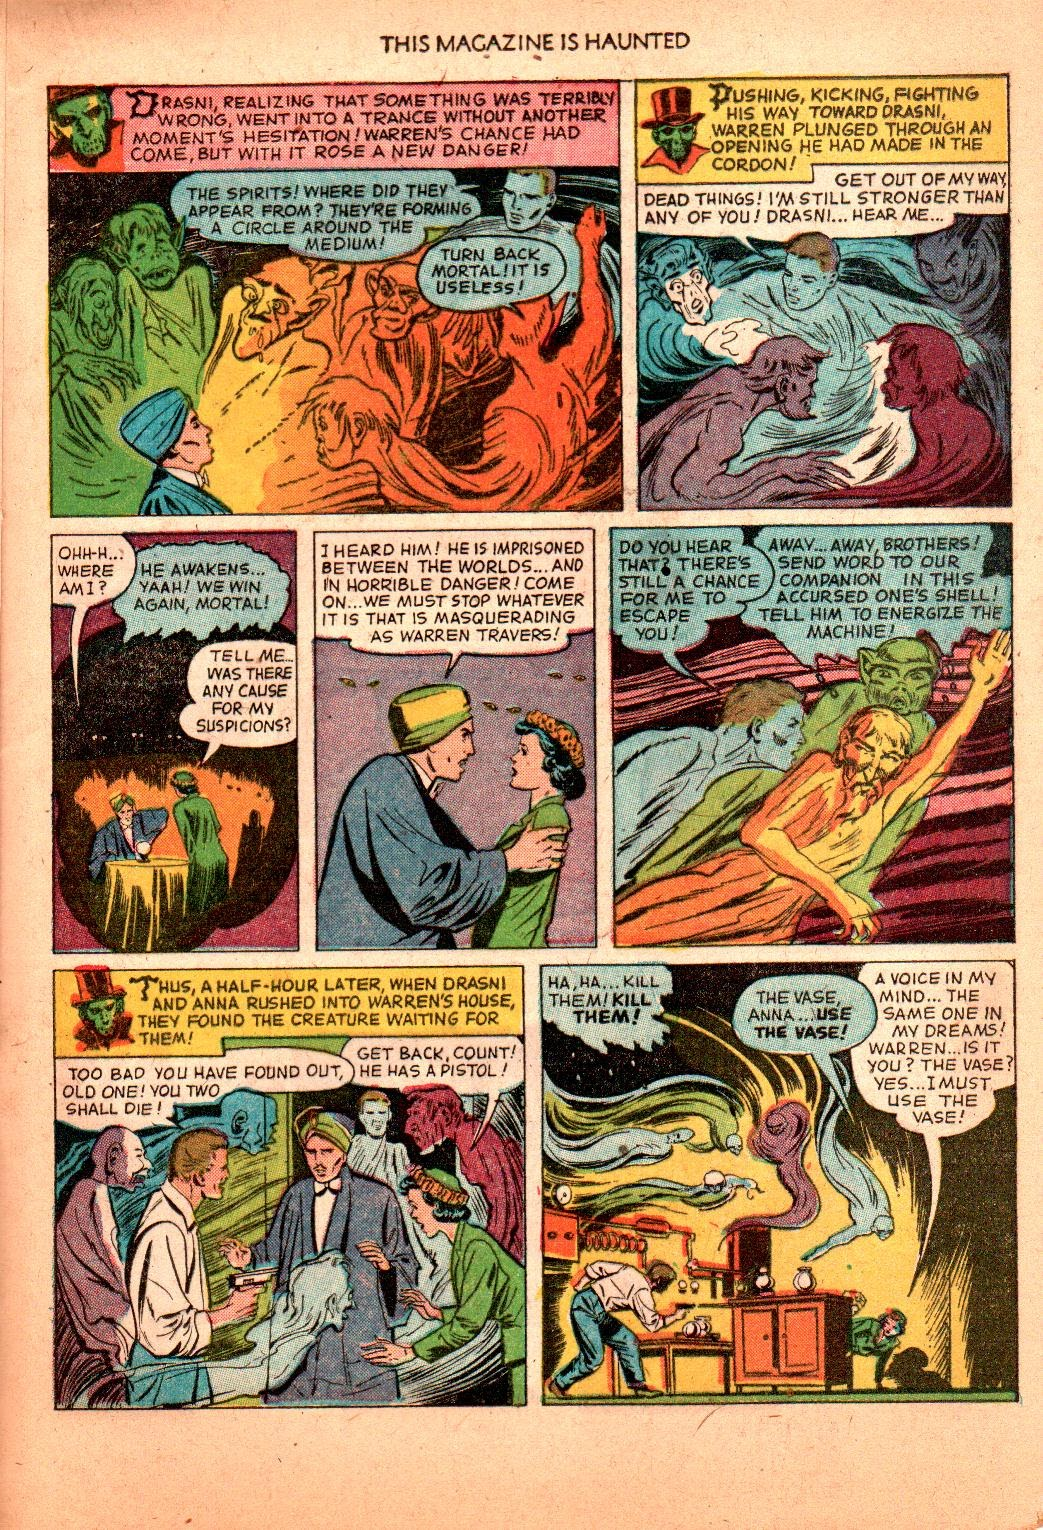 Read online This Magazine Is Haunted comic -  Issue #4 - 21